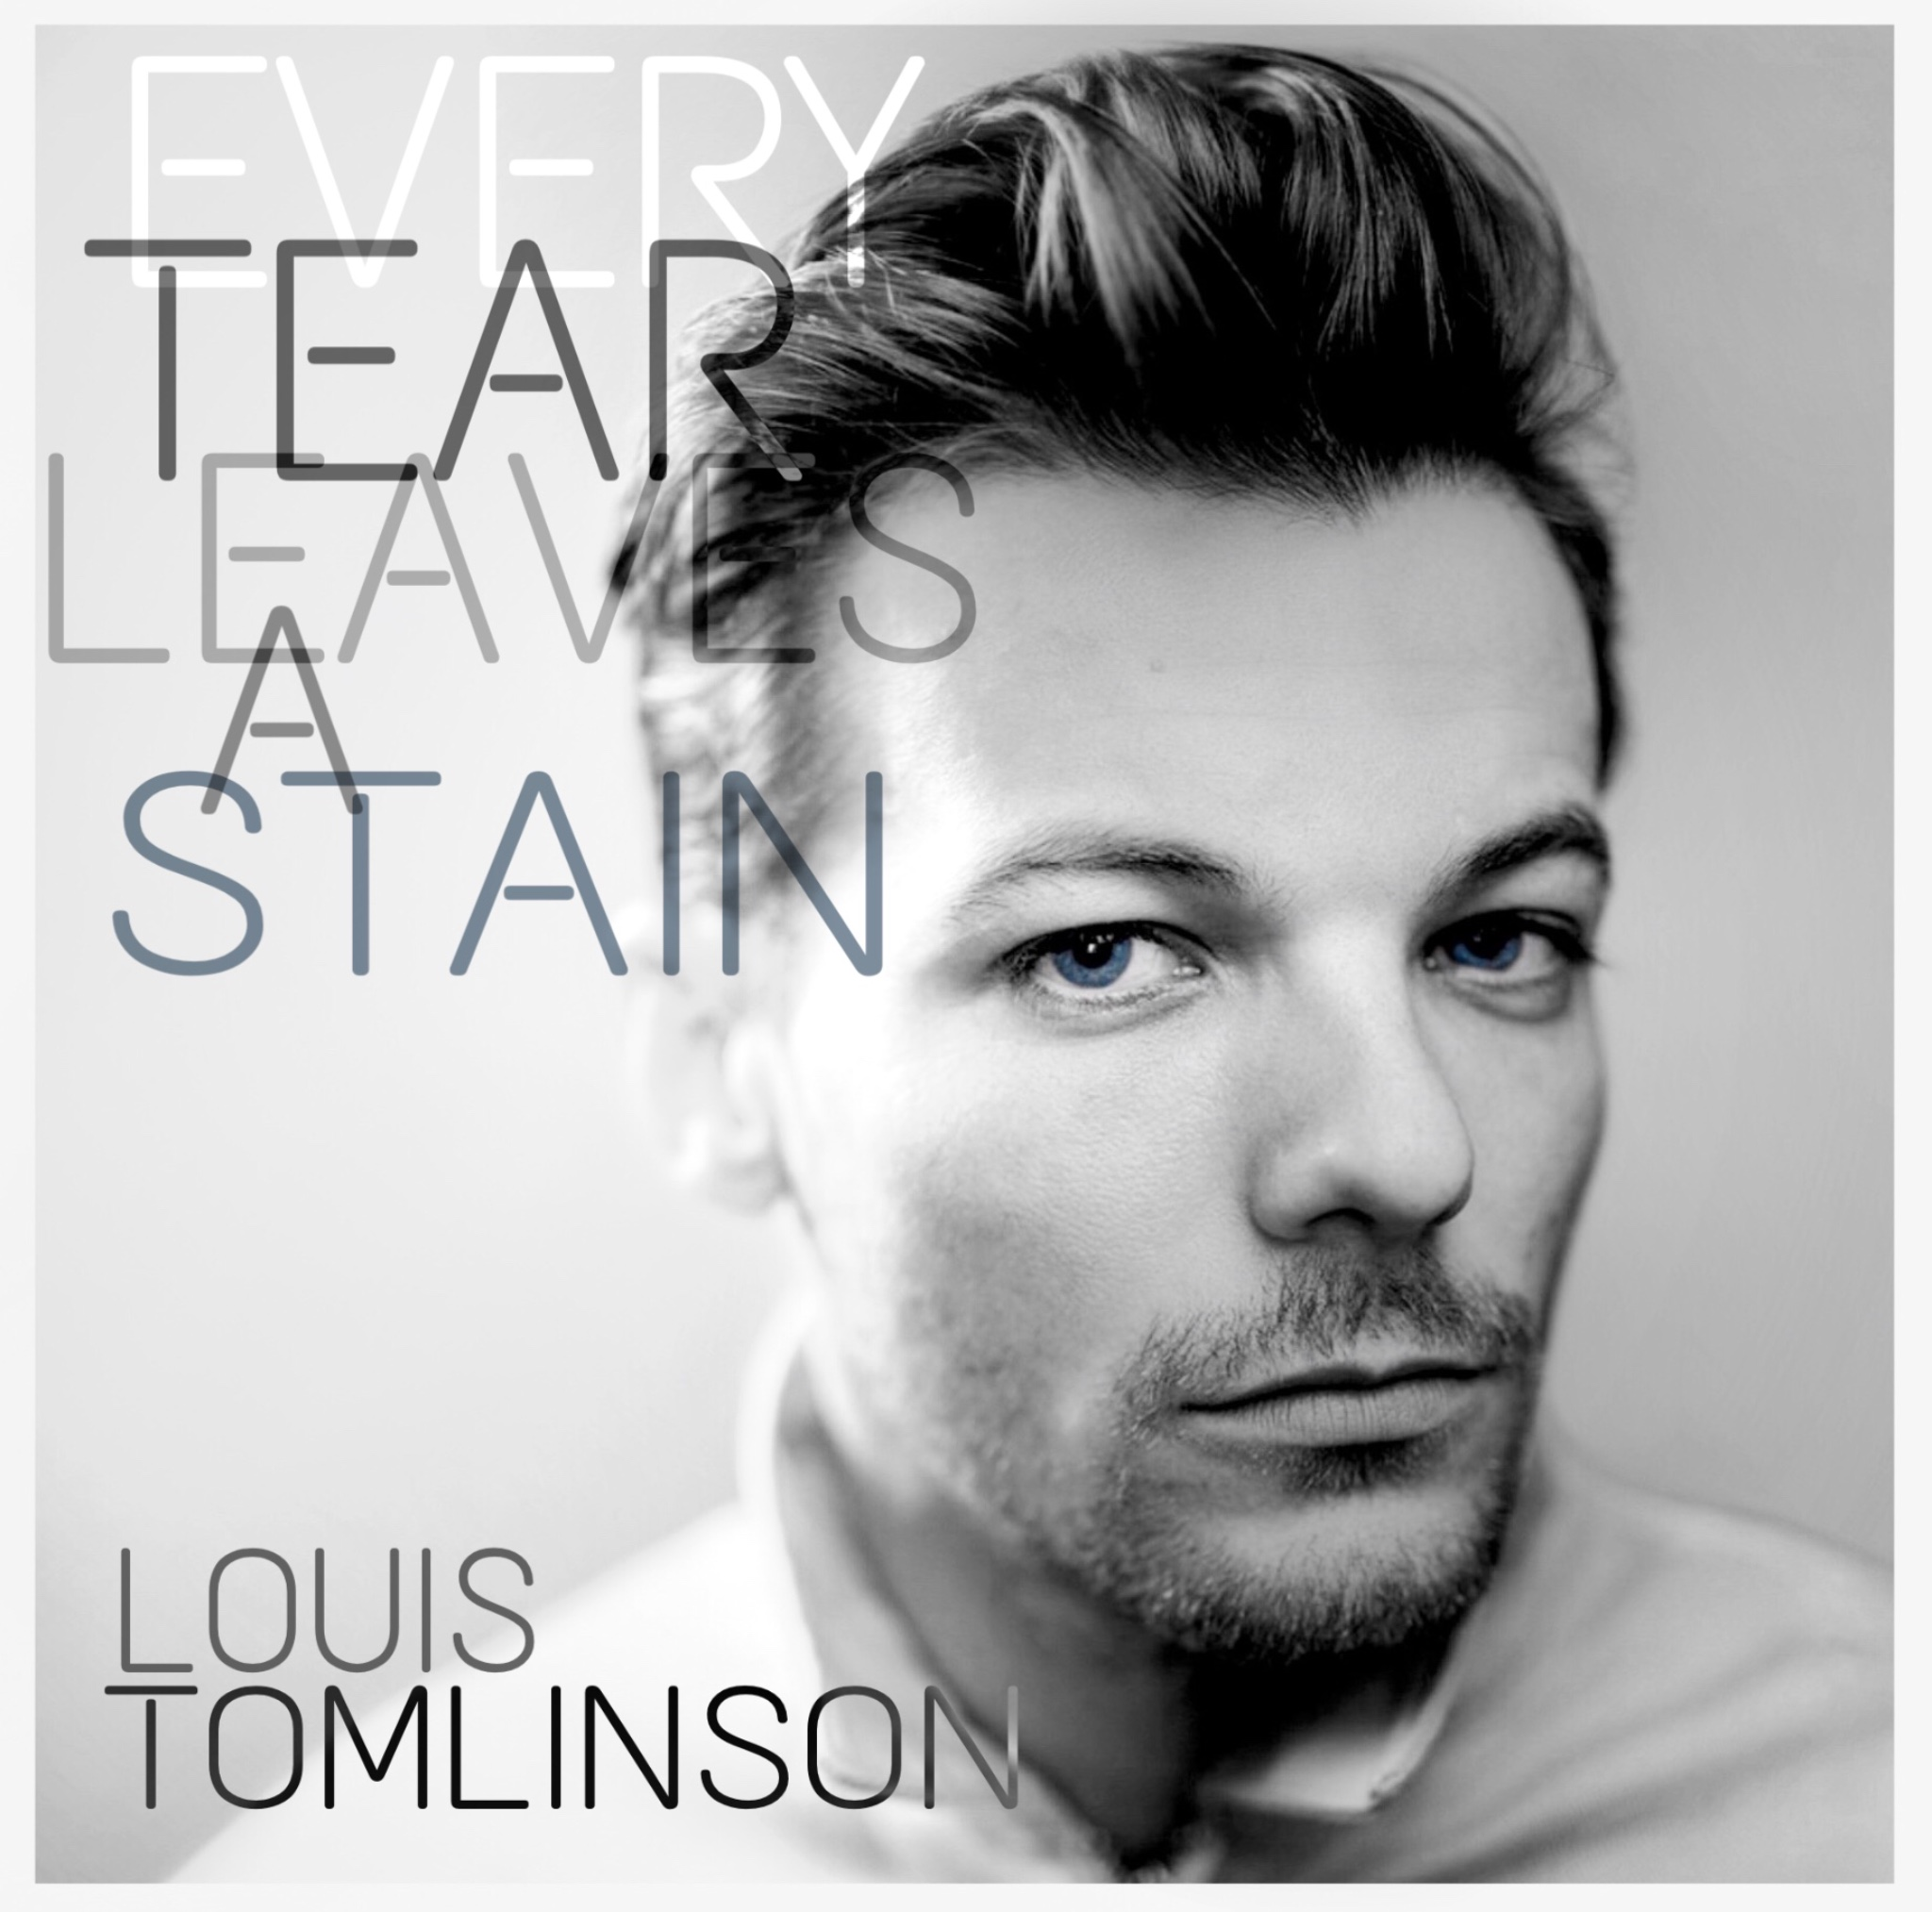 139. Every Tear Leaves A Stain   Deb